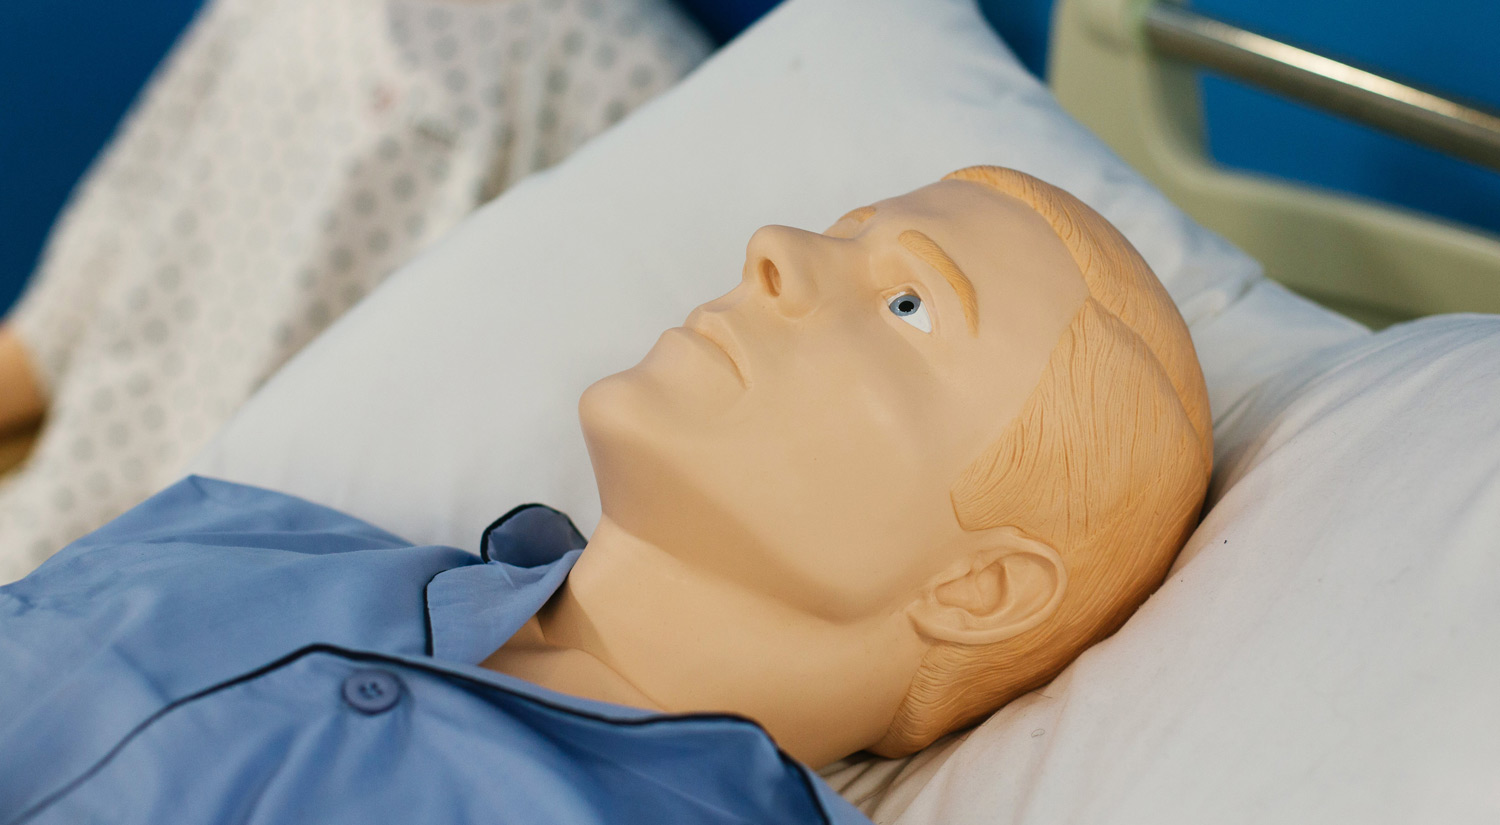 The patients can simulate illnesses from infections to heart attacks